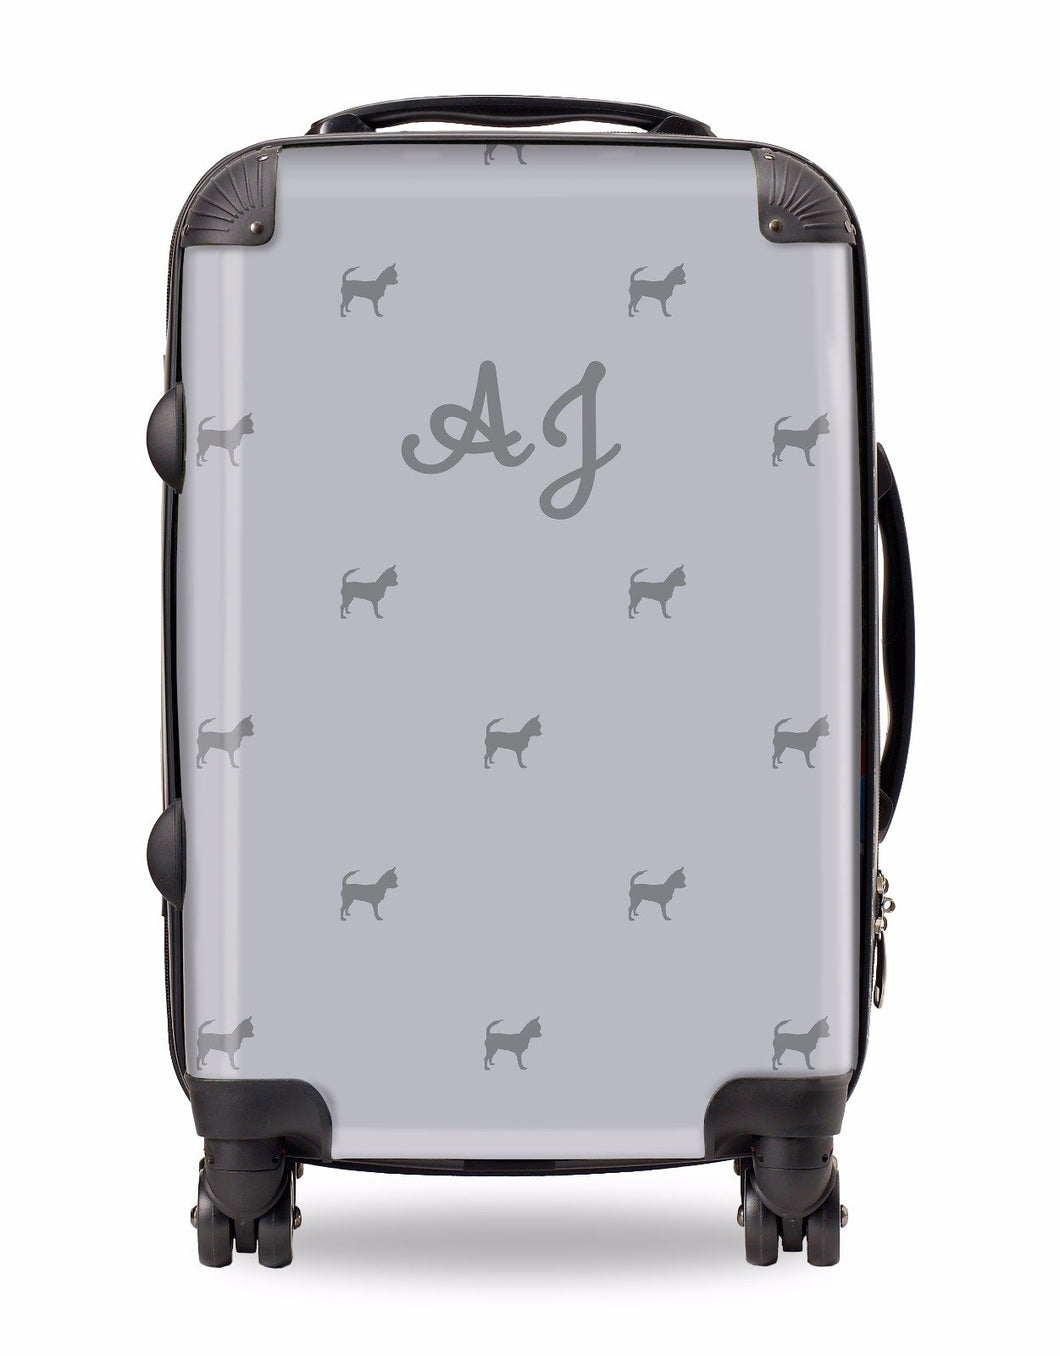 Personalised Suitcase Pale Grey with Charcoal Dog Breed Silhouette Option